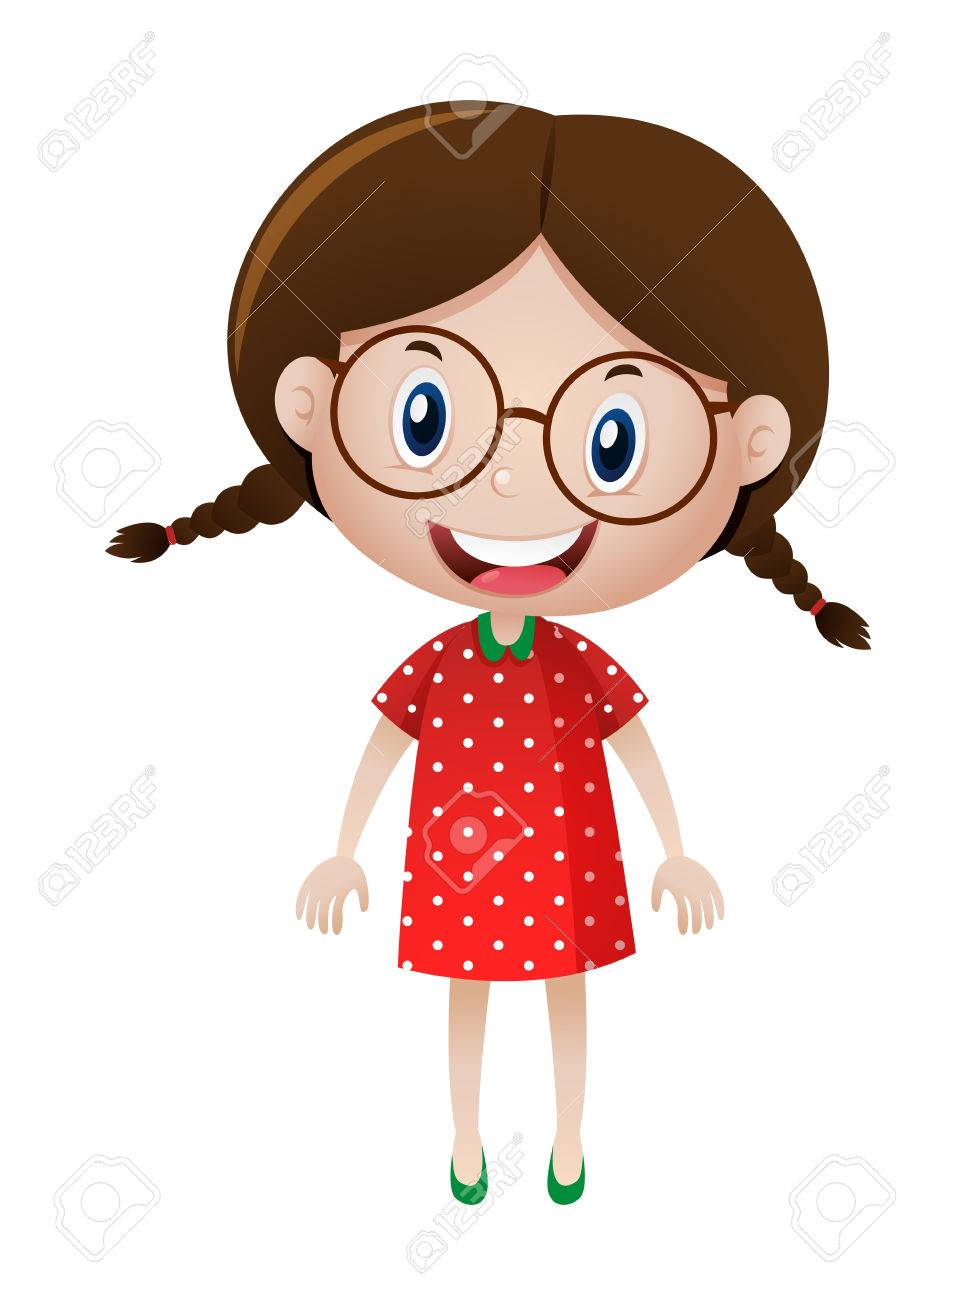 Little girl wearing glasses illustration.